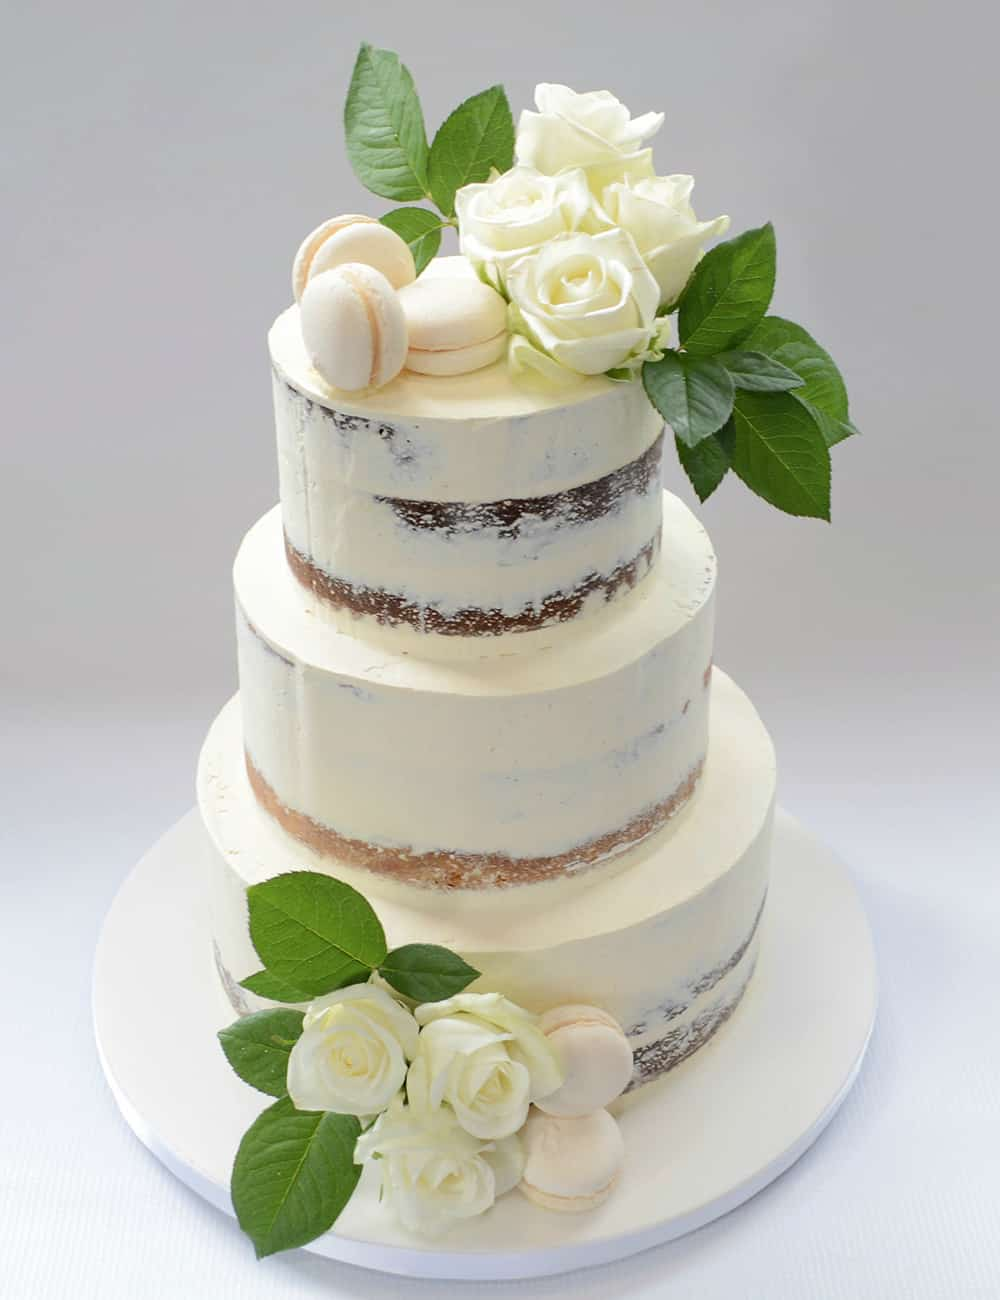 10 things you need to know about wedding cakes - Queensland Brides